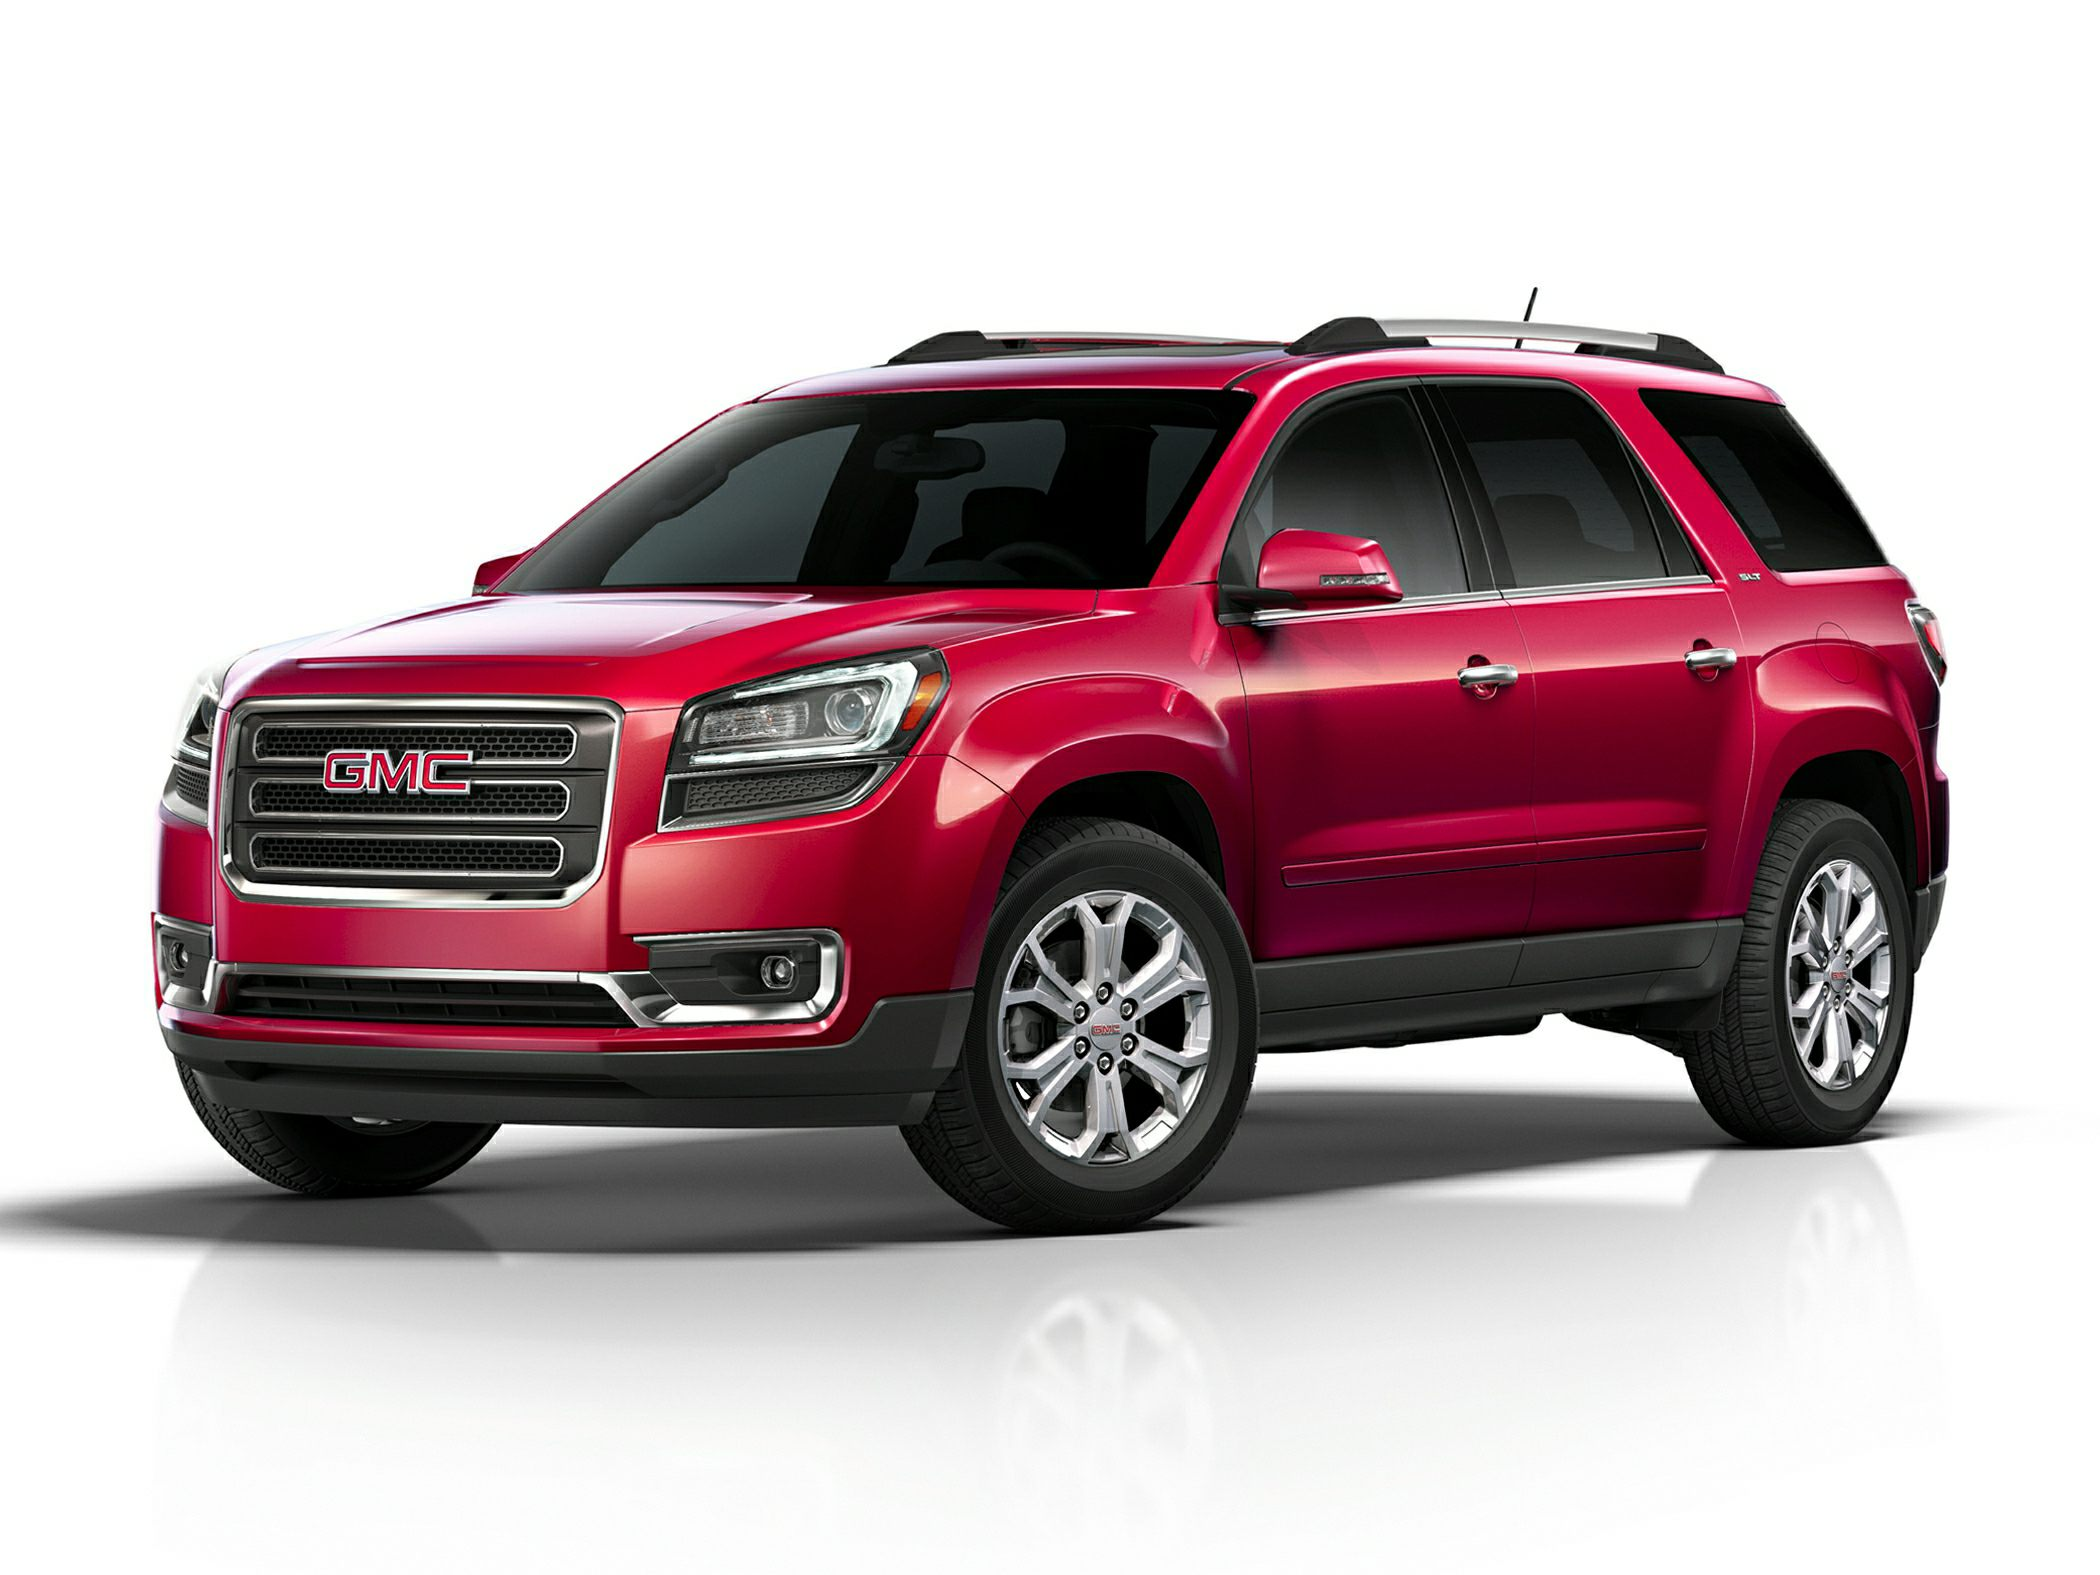 Certified 2017 GMC Acadia Limited Limited SUV in Sumter, SC near 29150.